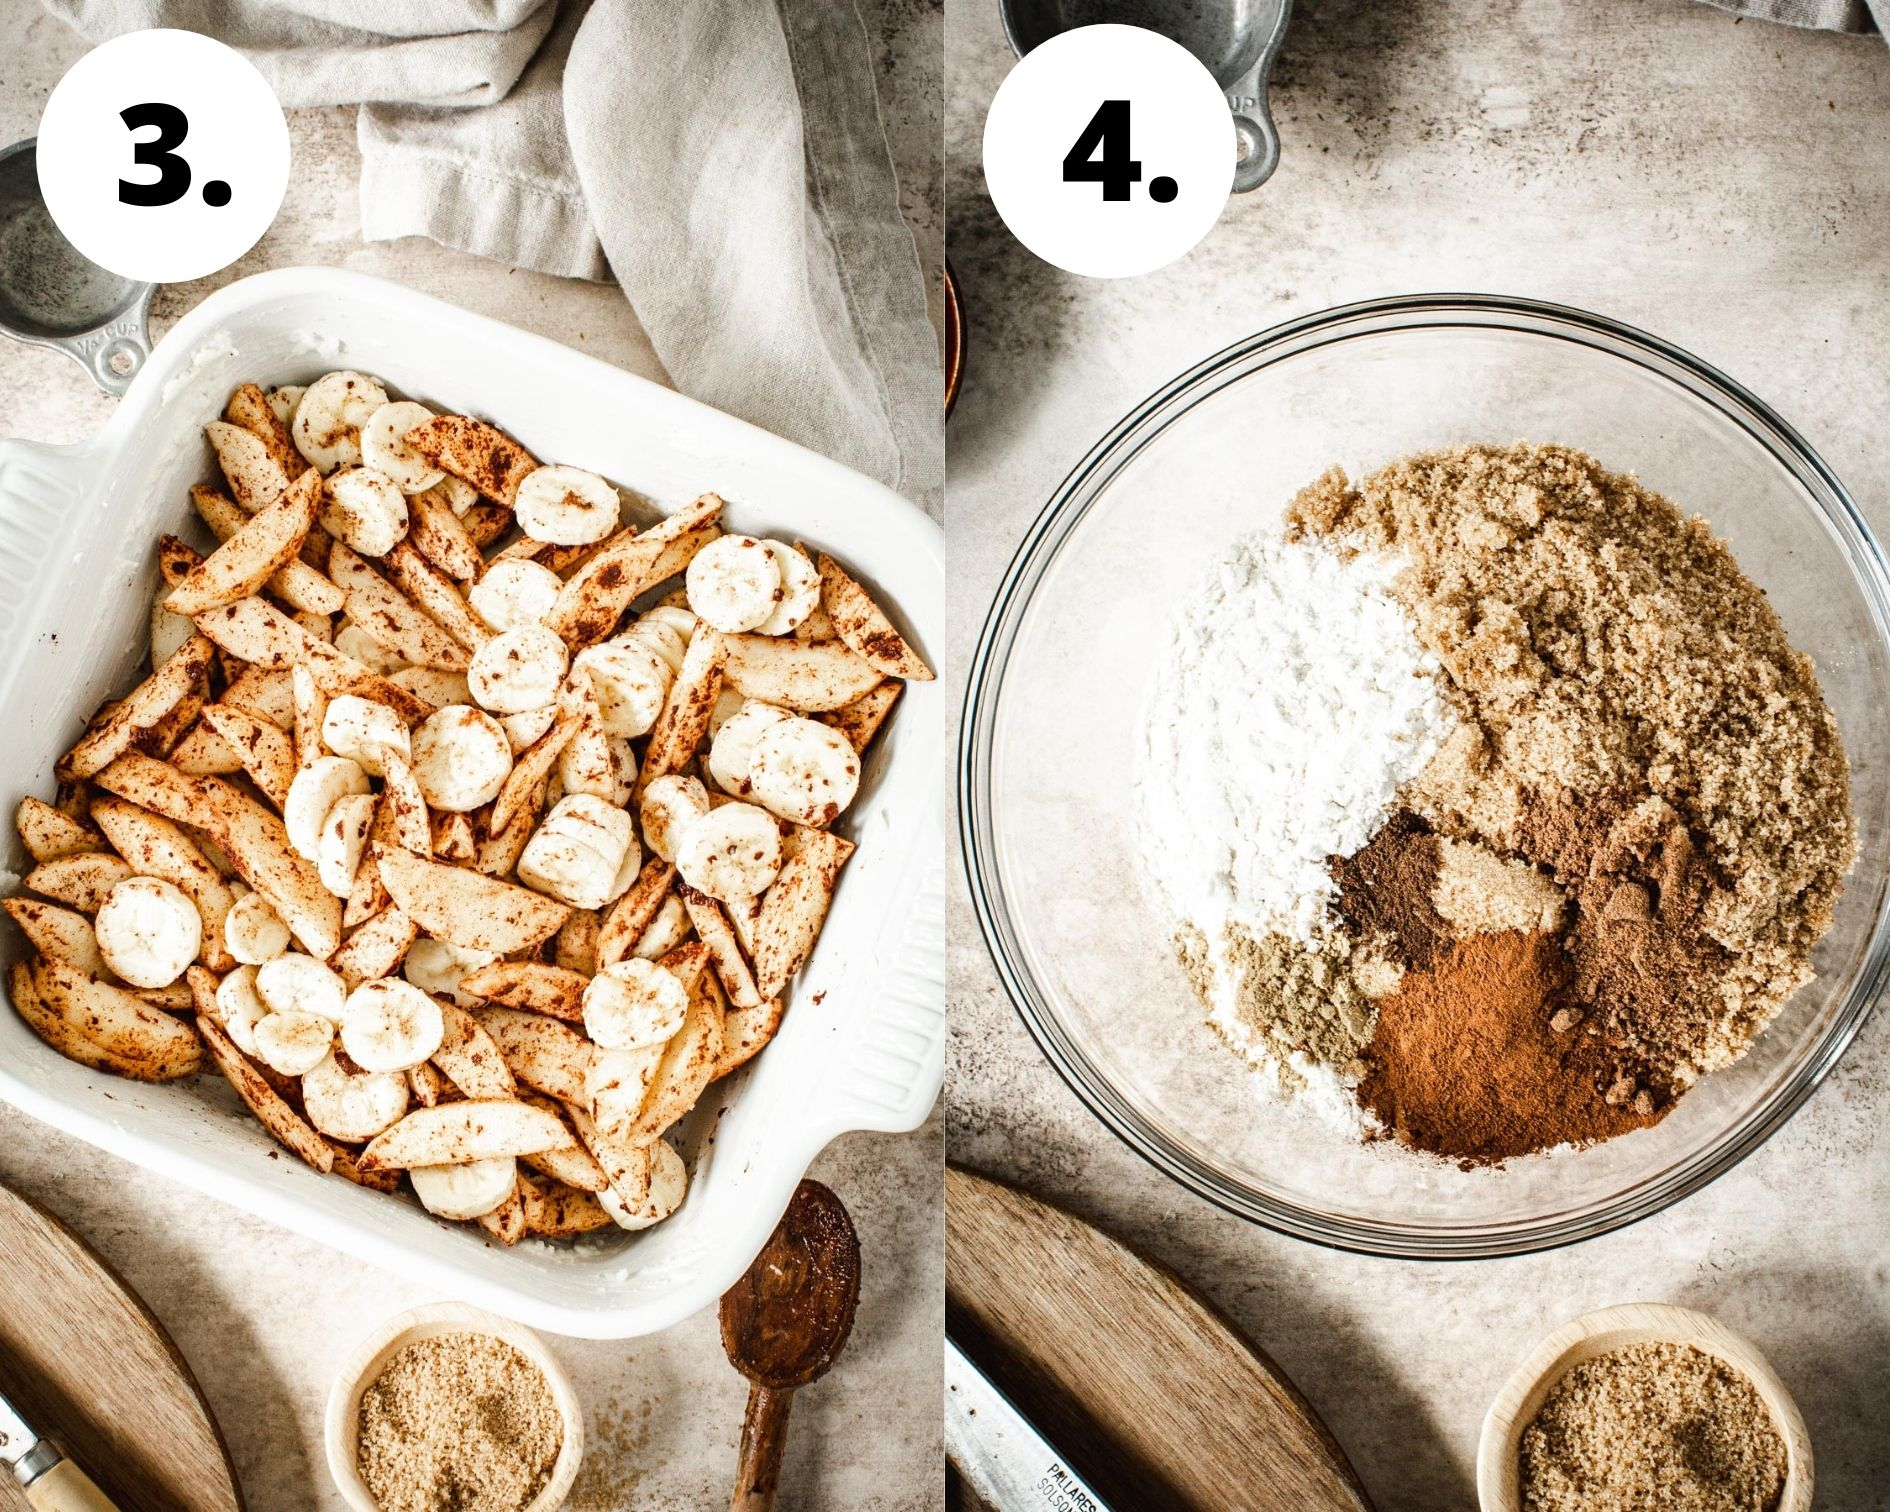 Baked apple crumble process steps 3 and 4.